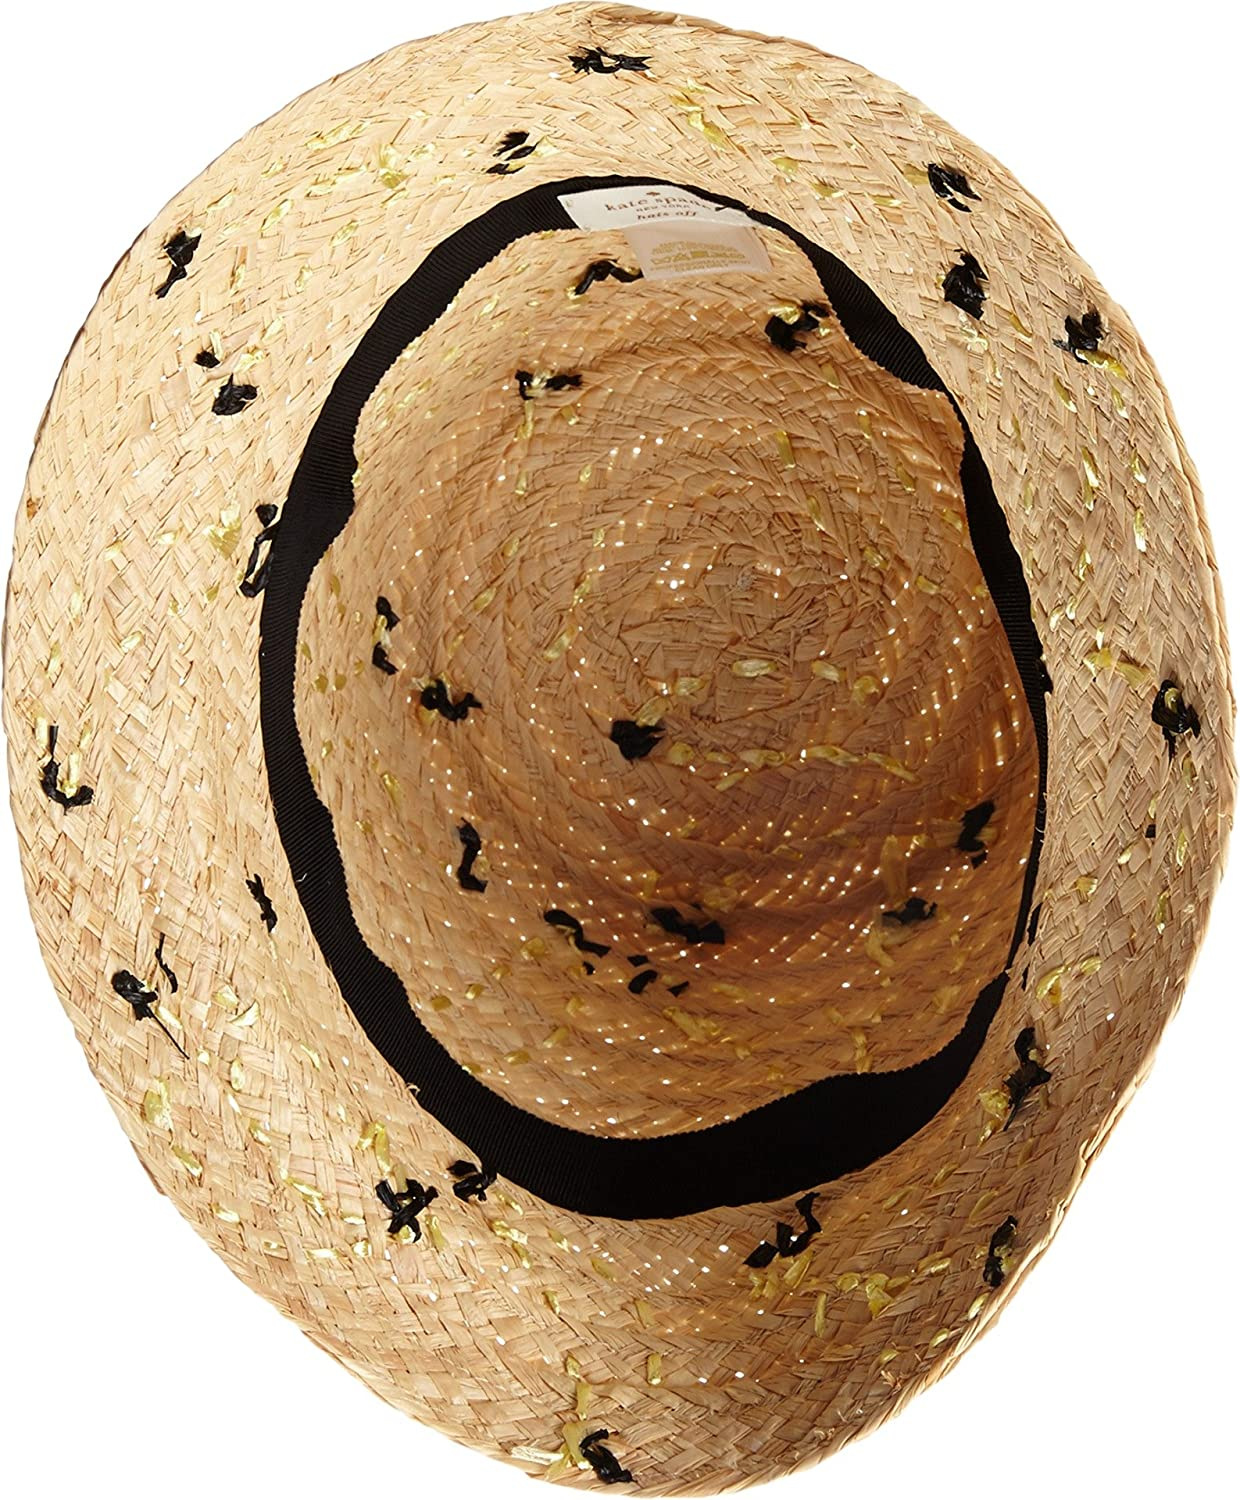 efa9340f8fe4a Amazon.com  Kate Spade New York Women s That s Bananas Hand Embroidered  Cloche Sun Hat